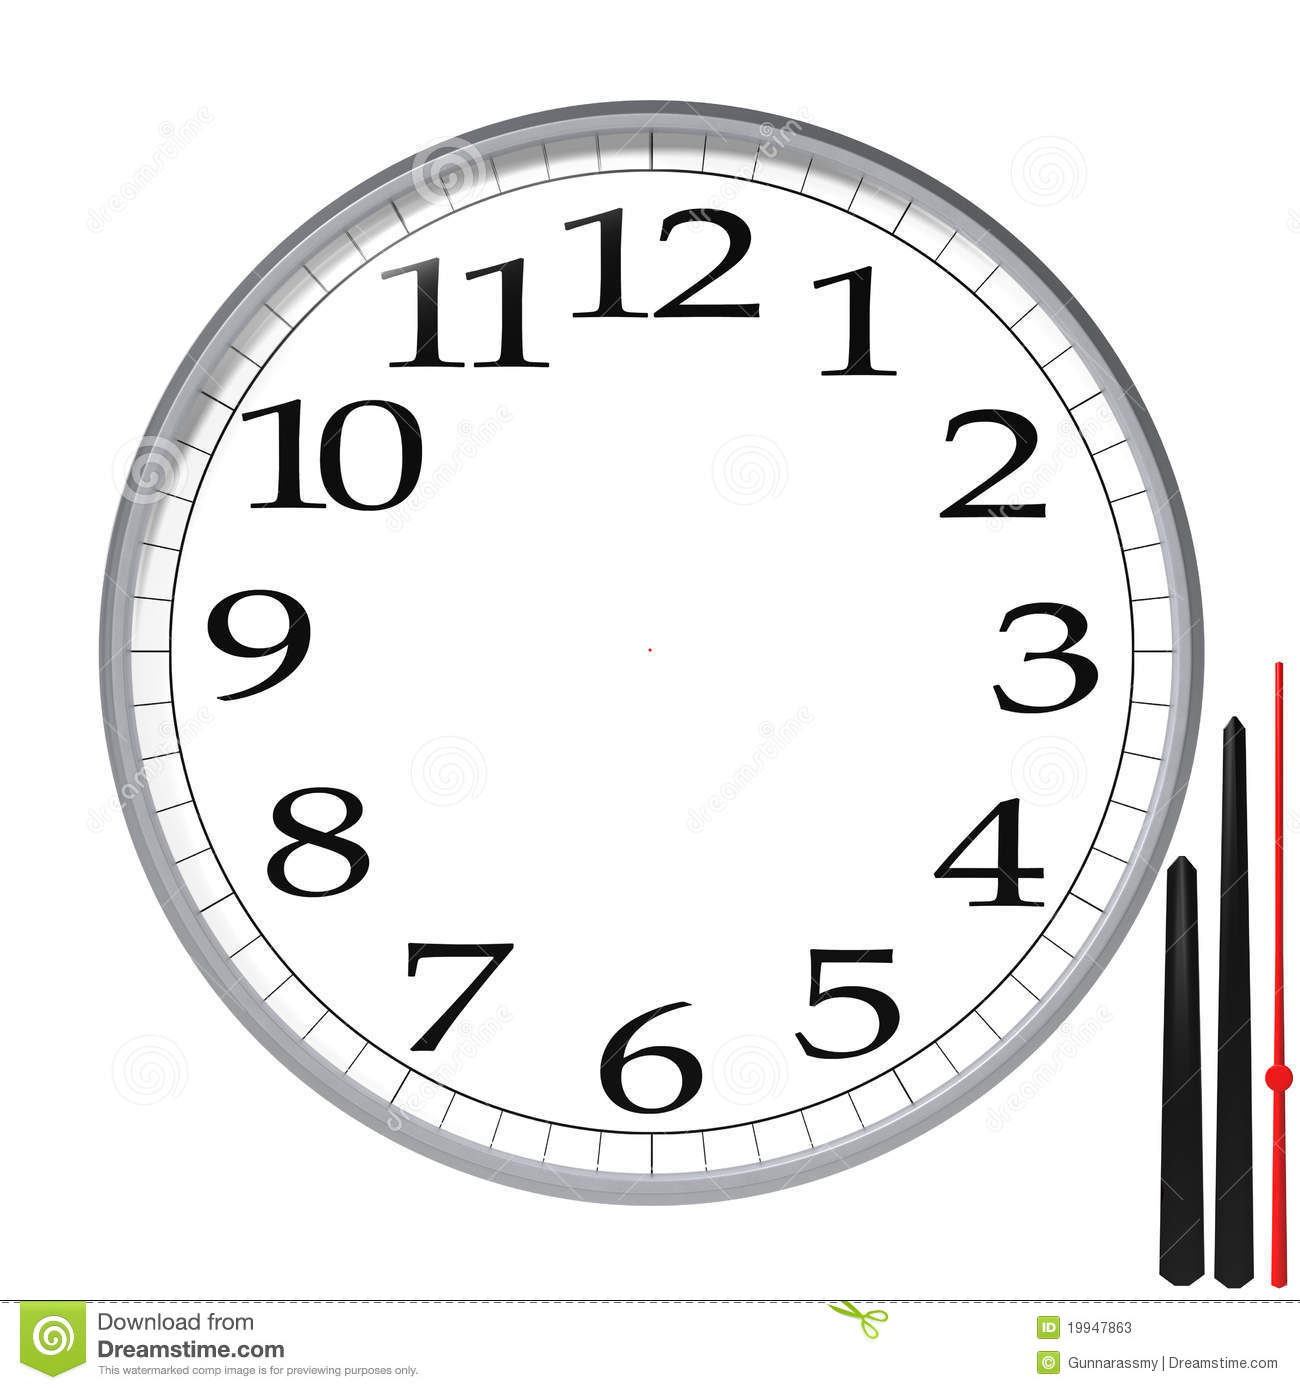 Wall Clock Design Template : Clock template stock photos image